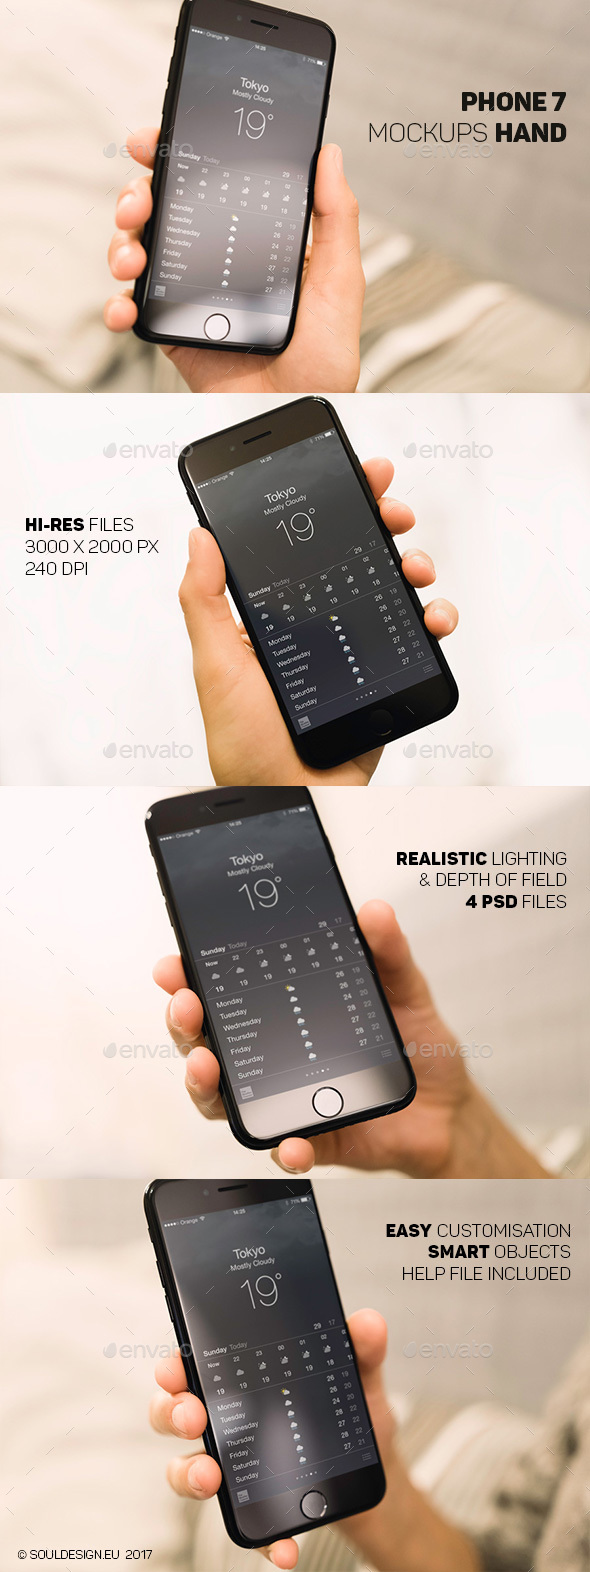 Phone 7 Jet Hand Mockup - Latest News on Apple products Latest Release Apps and Games